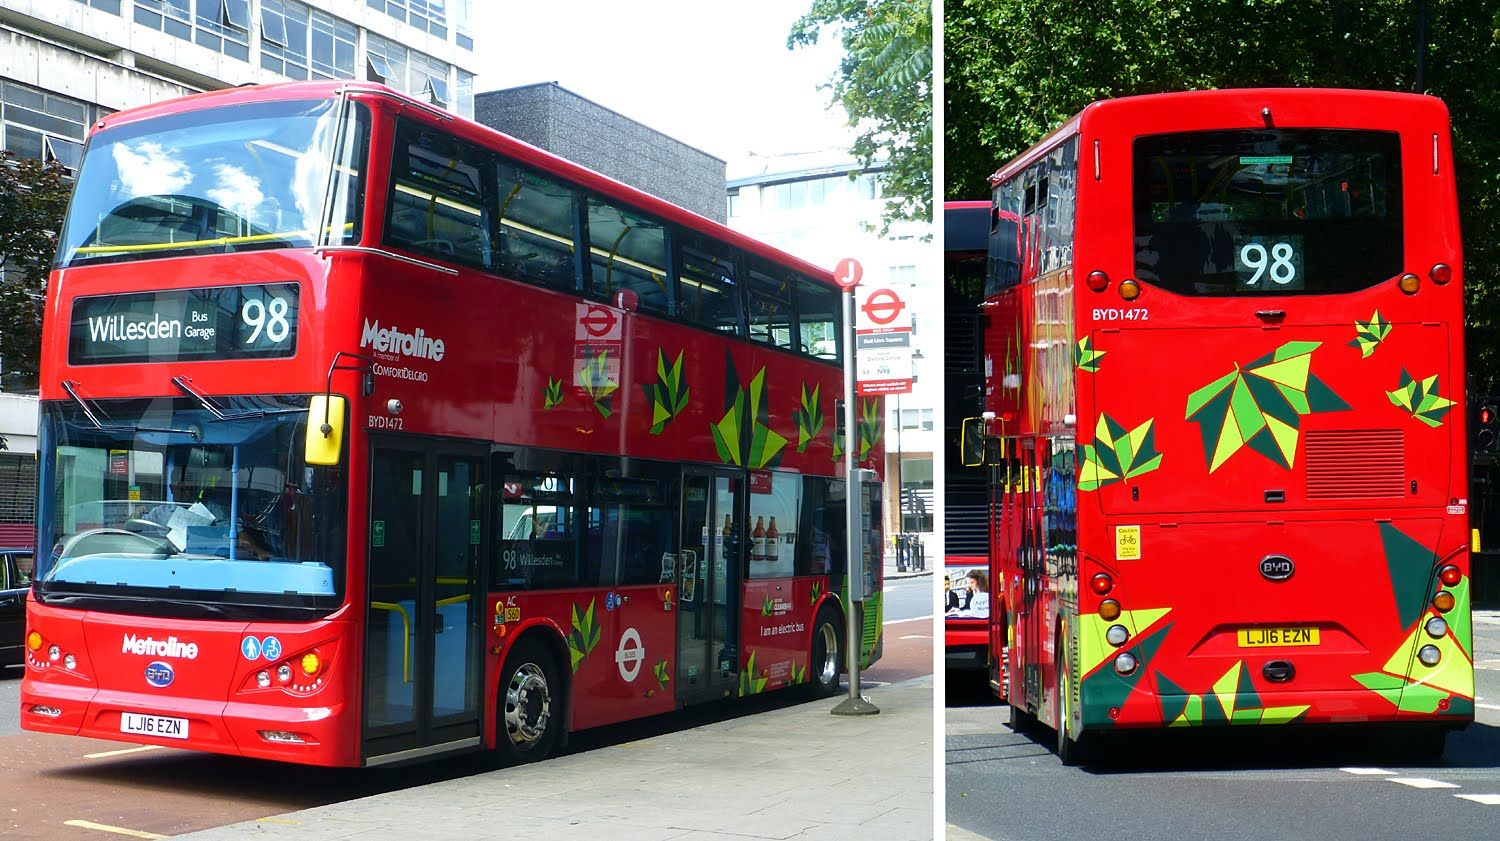 Byd Double Deck Battery Electric Bus In London Double Deck London Bus Bus